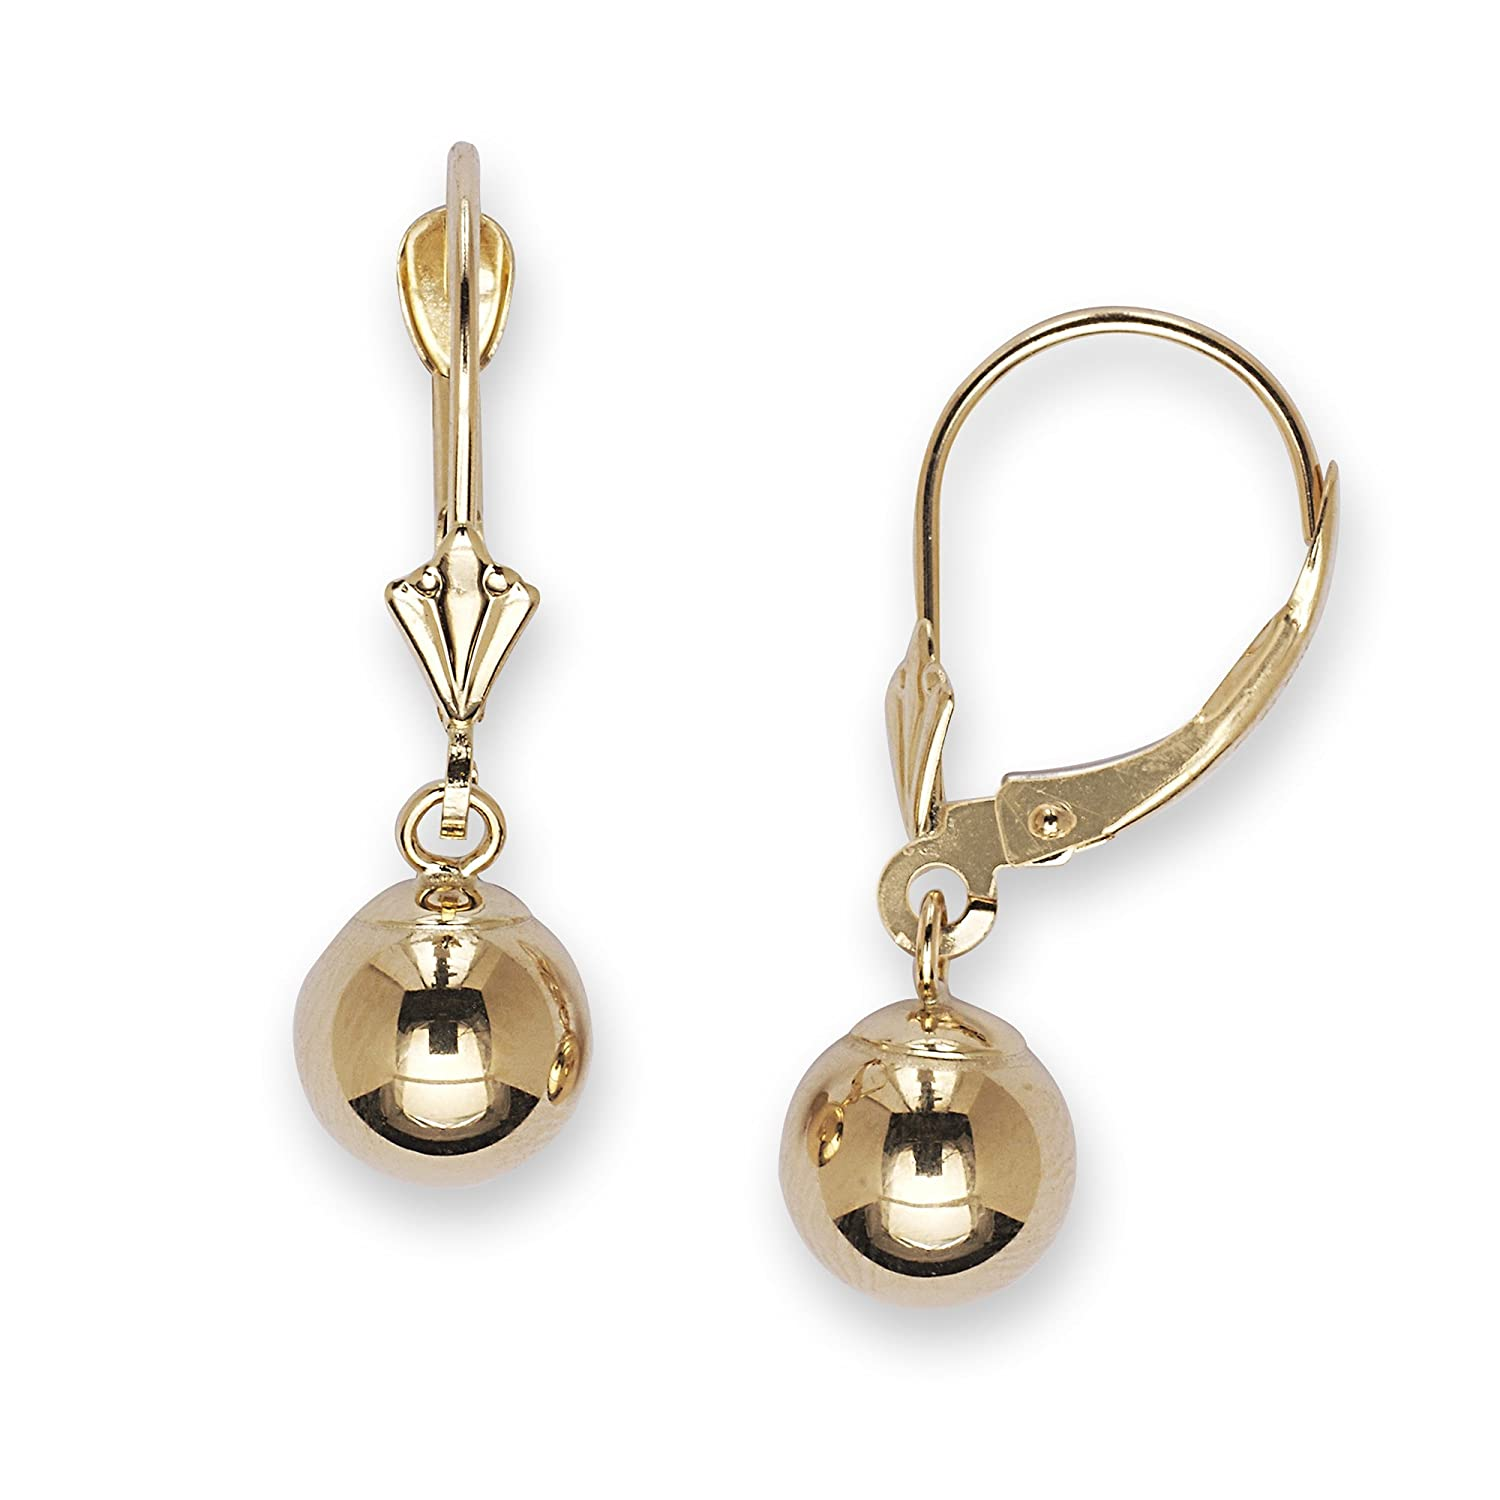 d985a8e27 Amazon.com: 14k Yellow Gold Large Ball Drop Leverback Earrings - Measures  27x8mm: Dangle Earrings: Jewelry